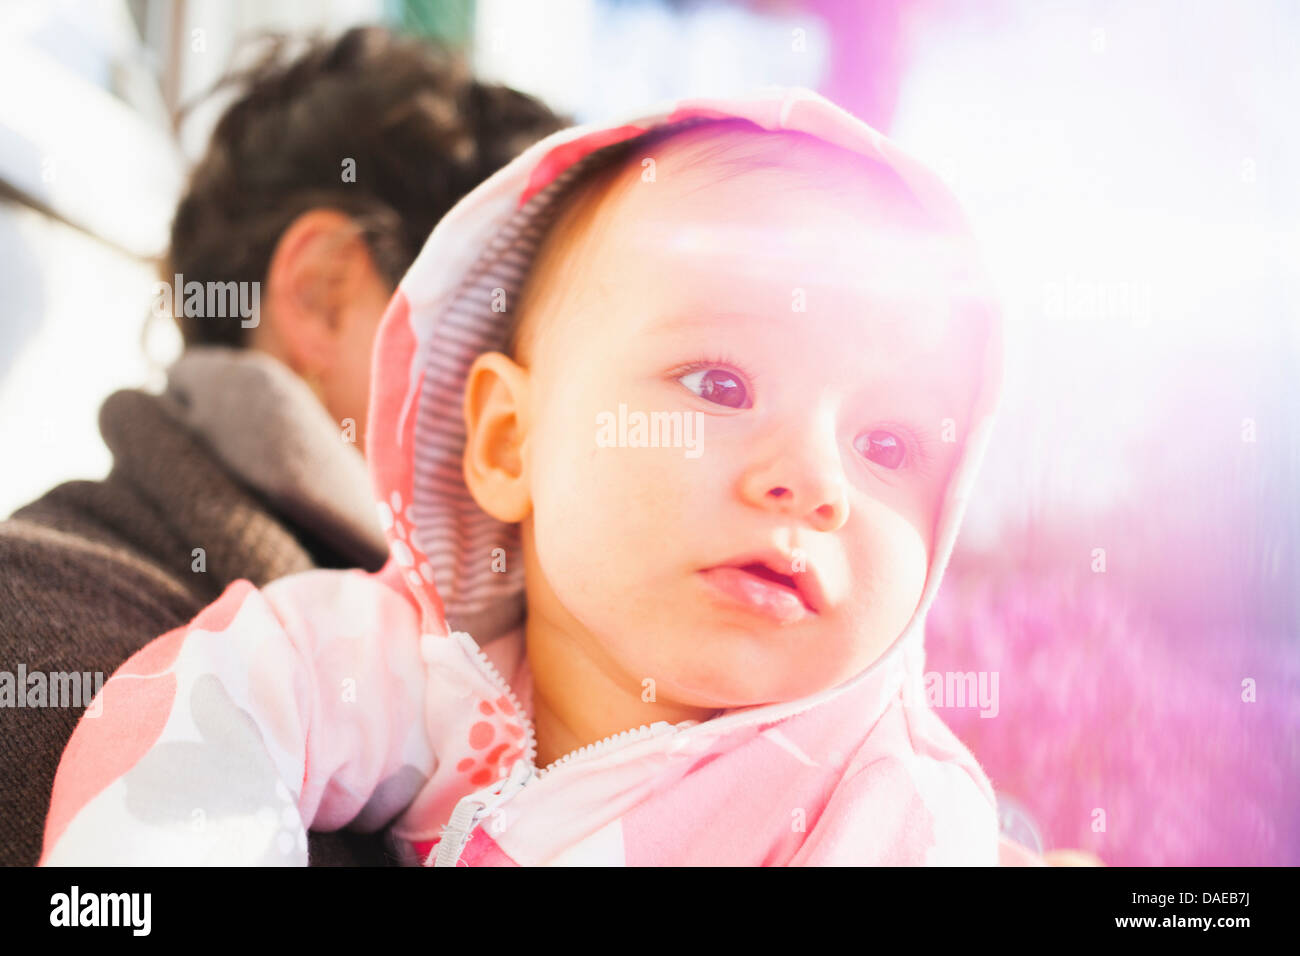 Close up portrait of baby girl wearing hood Photo Stock